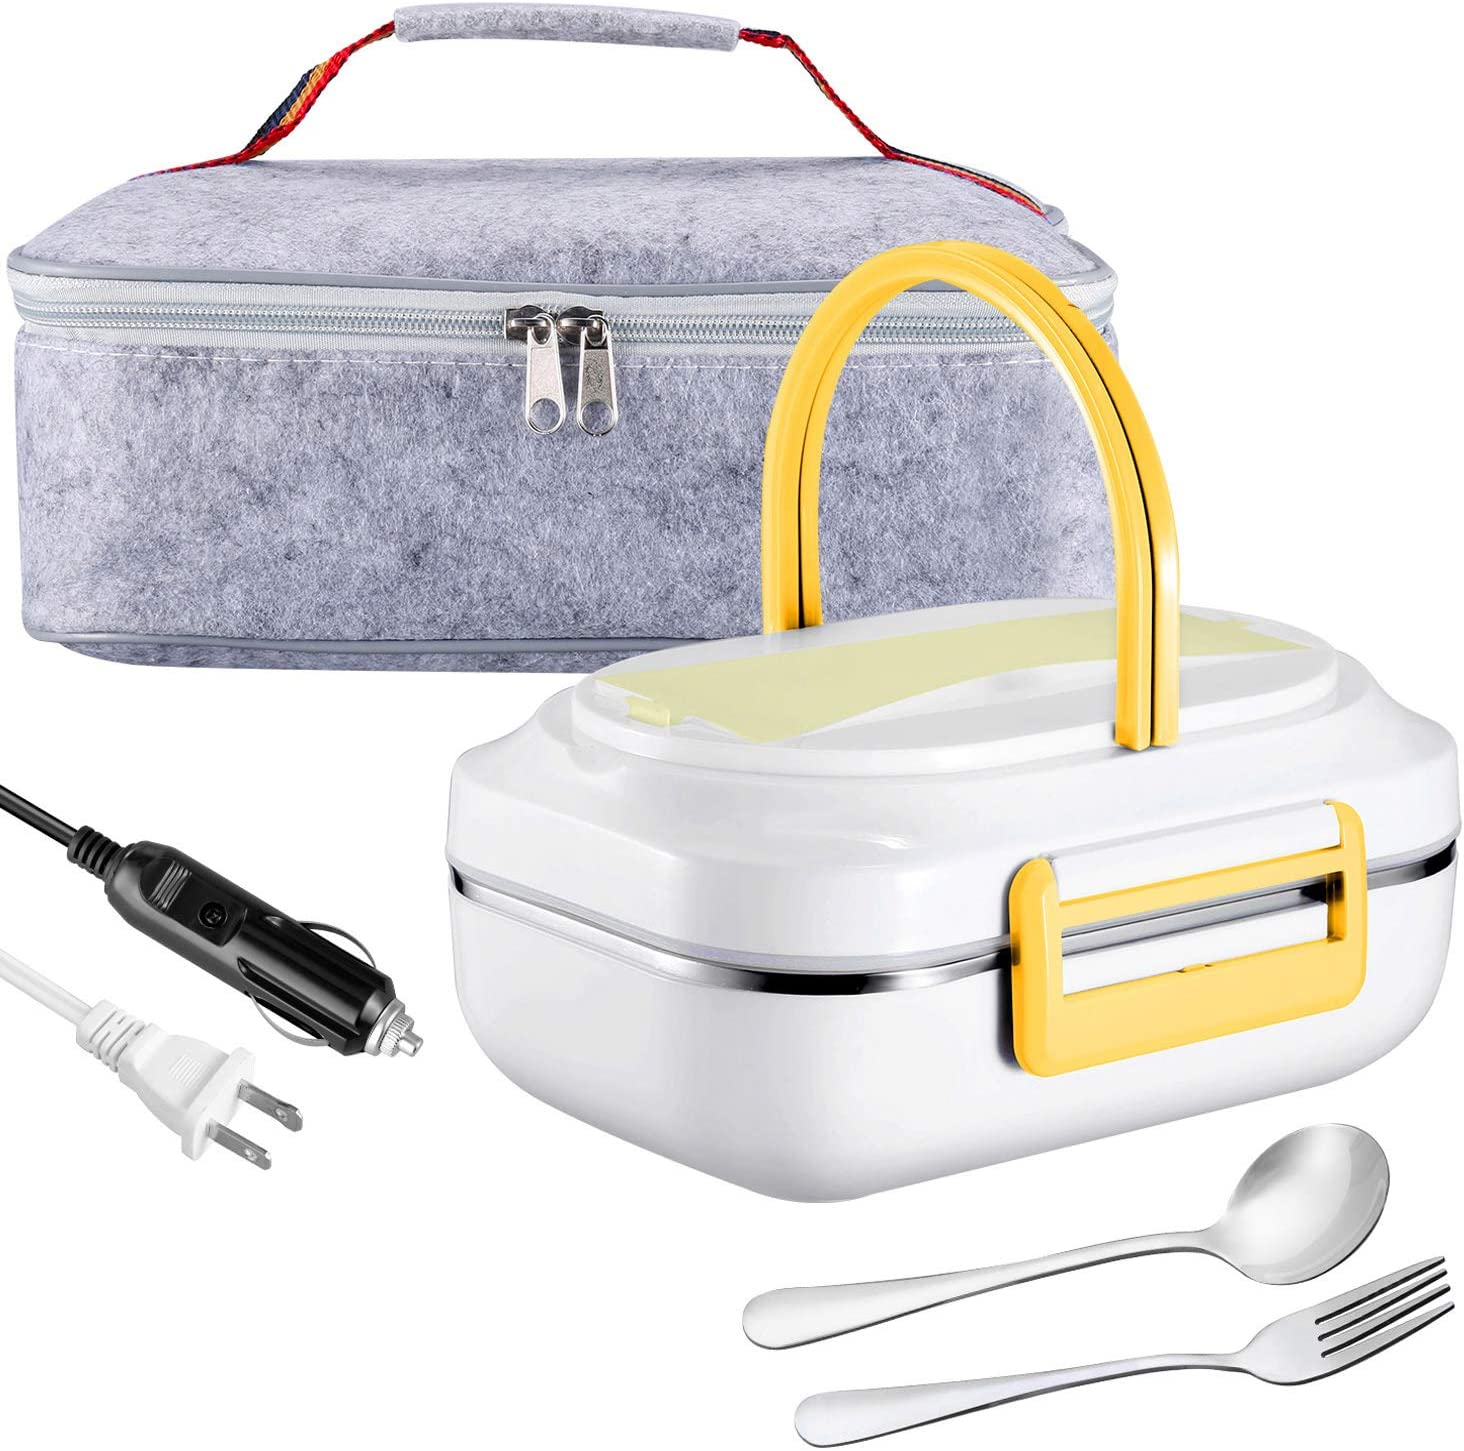 Electric Lunch Box Heating Lunchbox - Farochy Car Food Warmer and Heater Lunch Box Electric Lunch Box 2 in 1 for Car and Home 110V & 12V(Yellow)